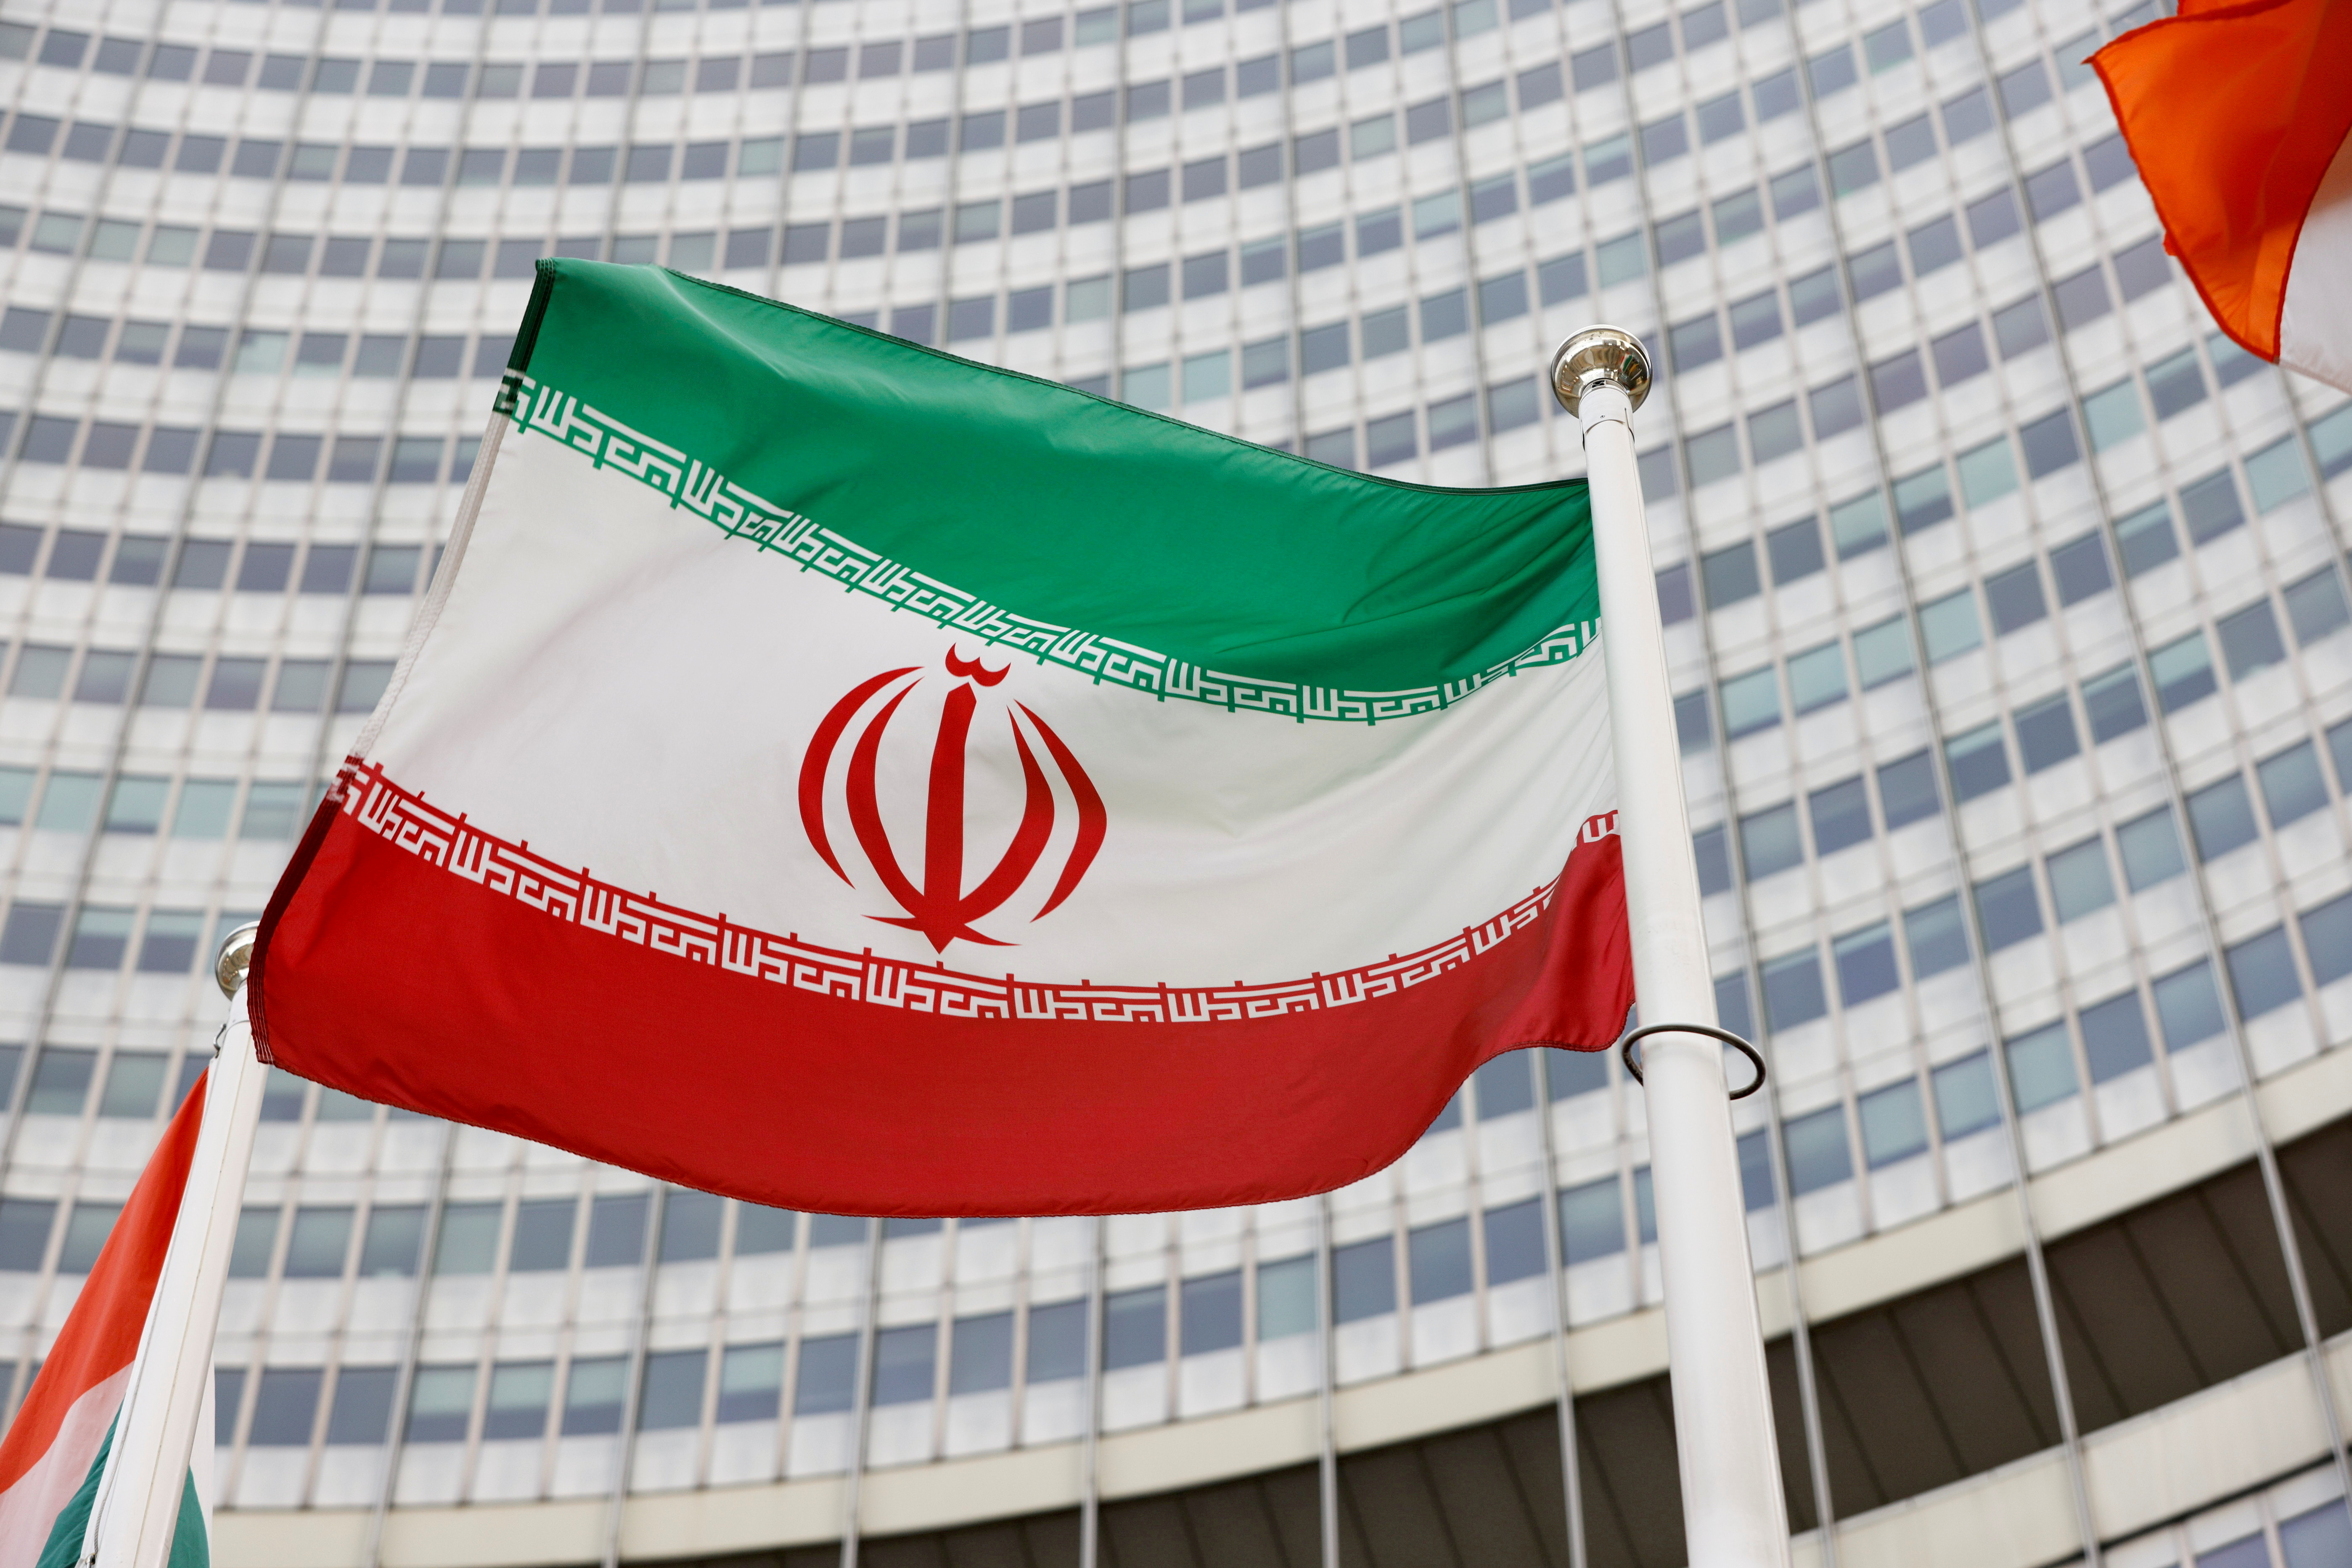 The Iranian flag waves in front of the International Atomic Energy Agency (IAEA) headquarters in Vienna, Austria May 23, 2021. REUTERS/Leonhard Foeger